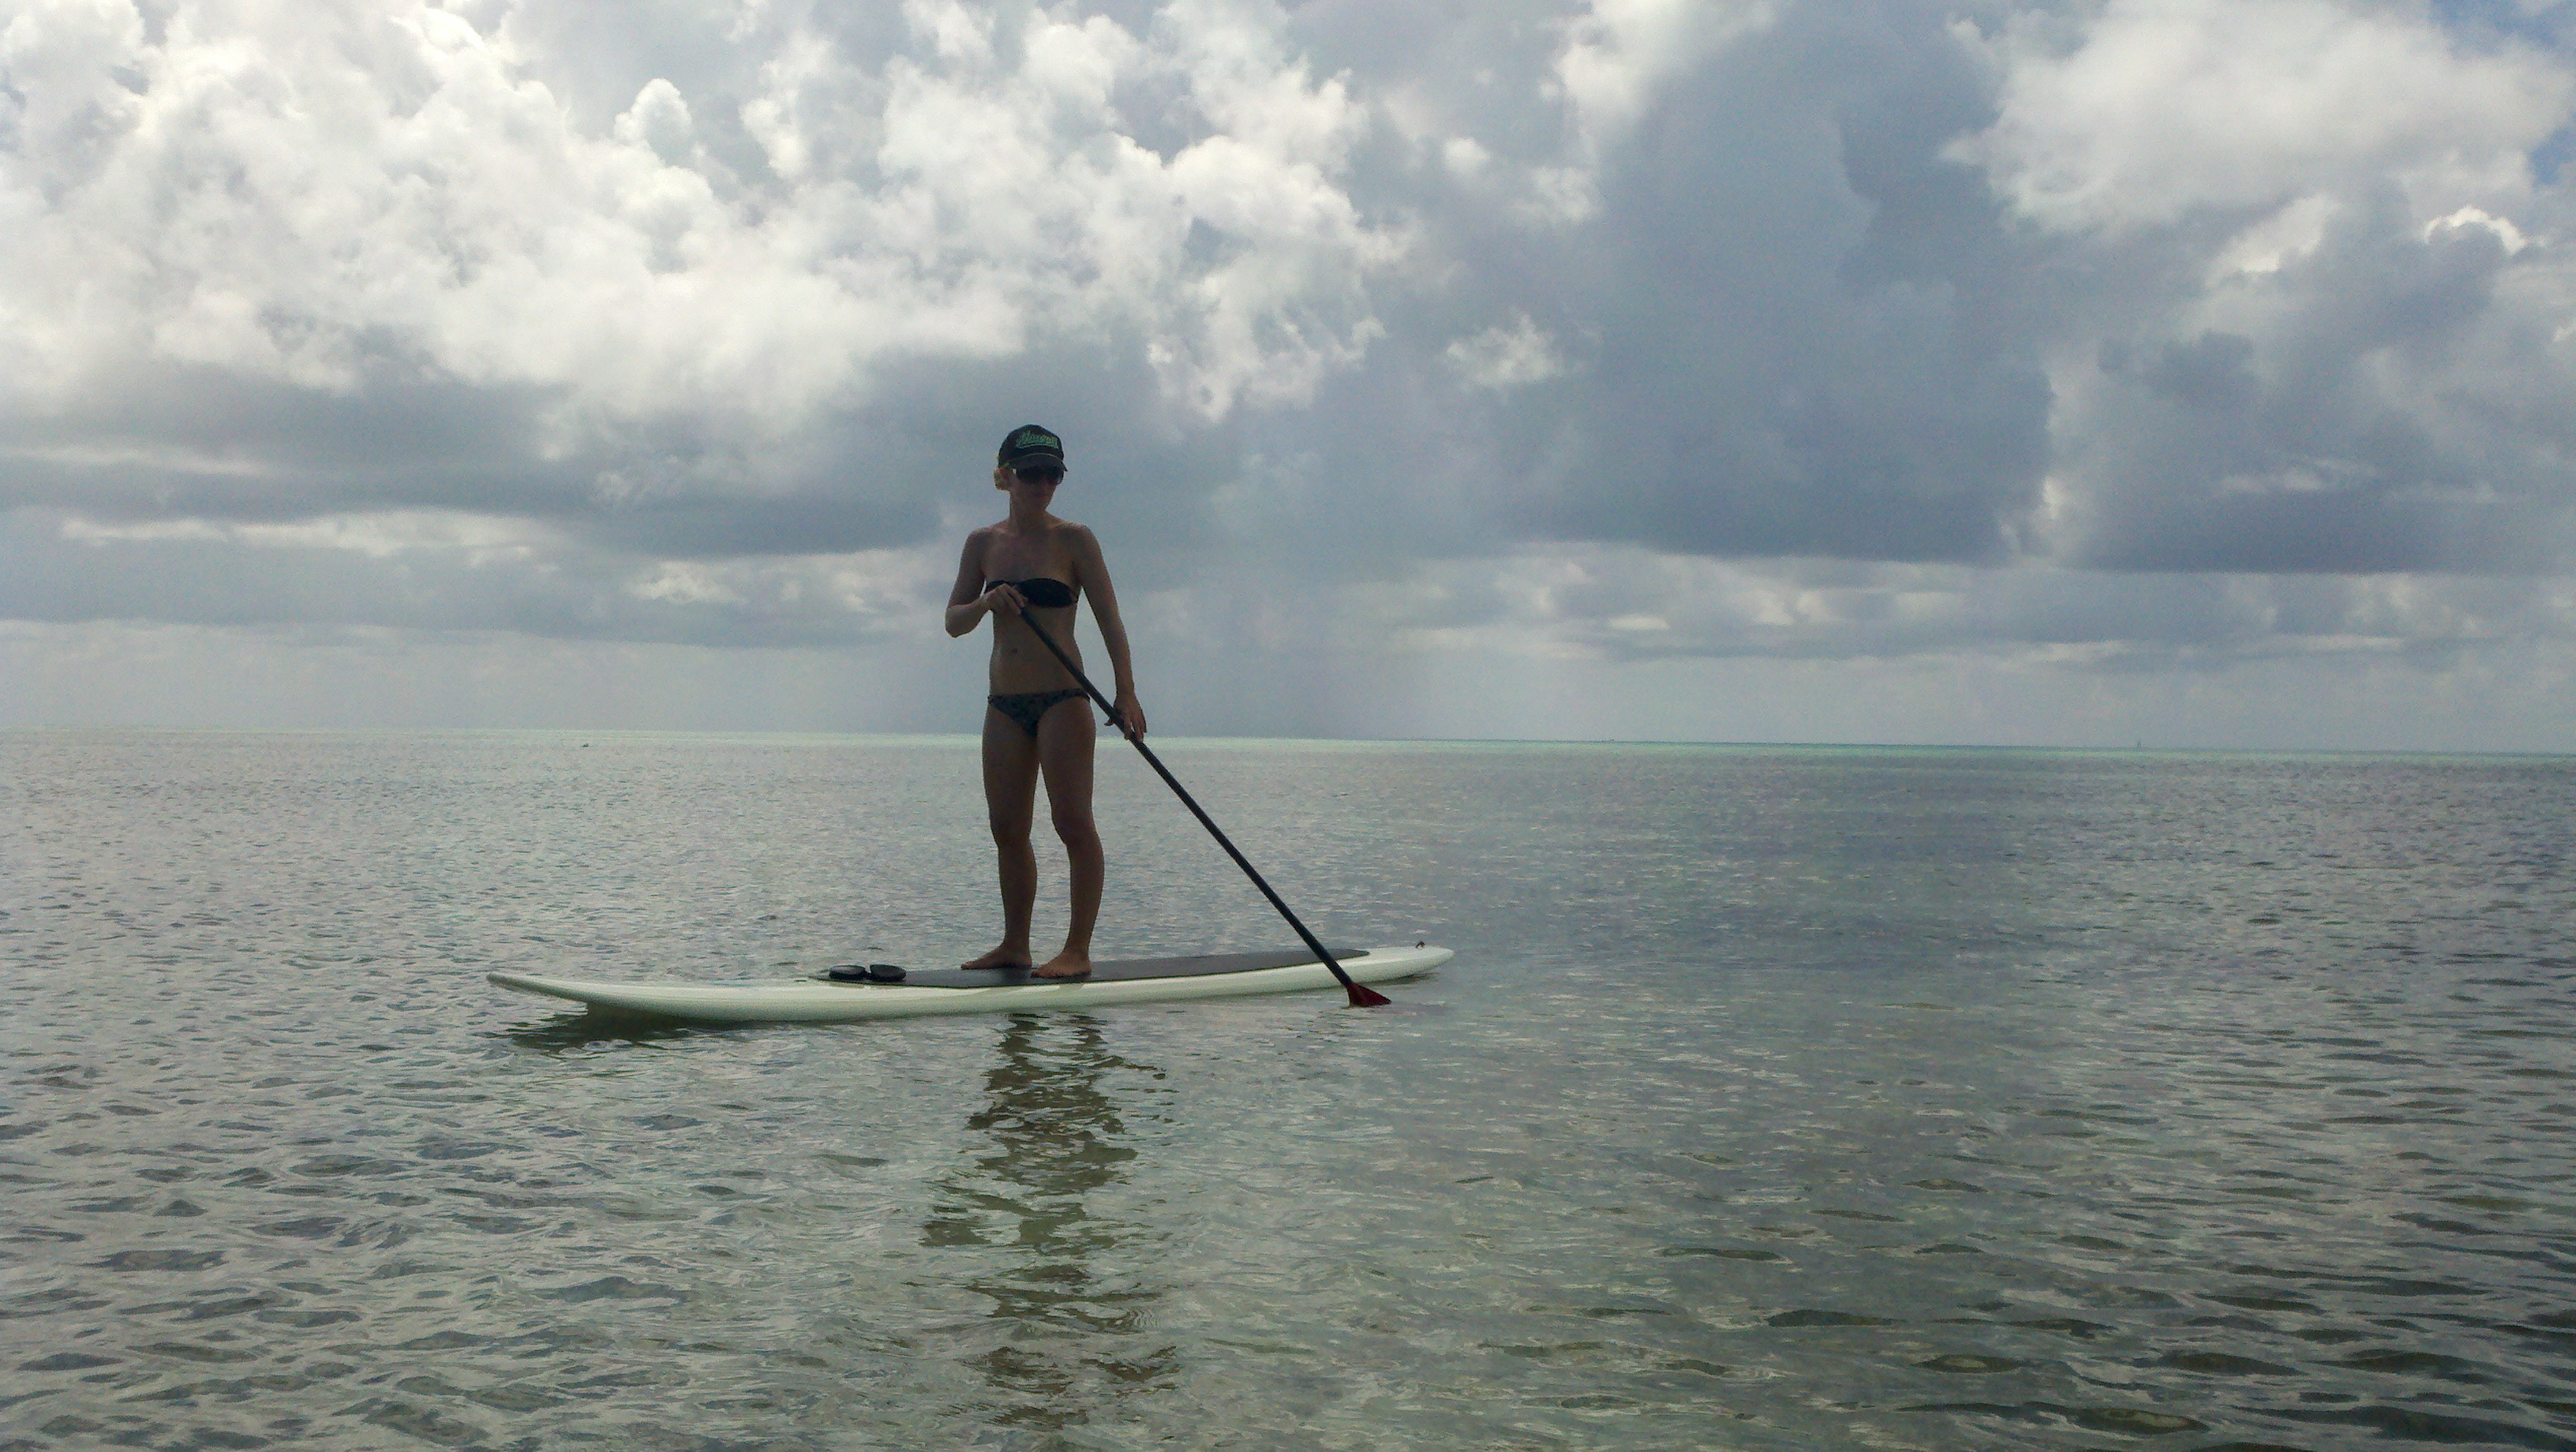 SUP Paddle Board